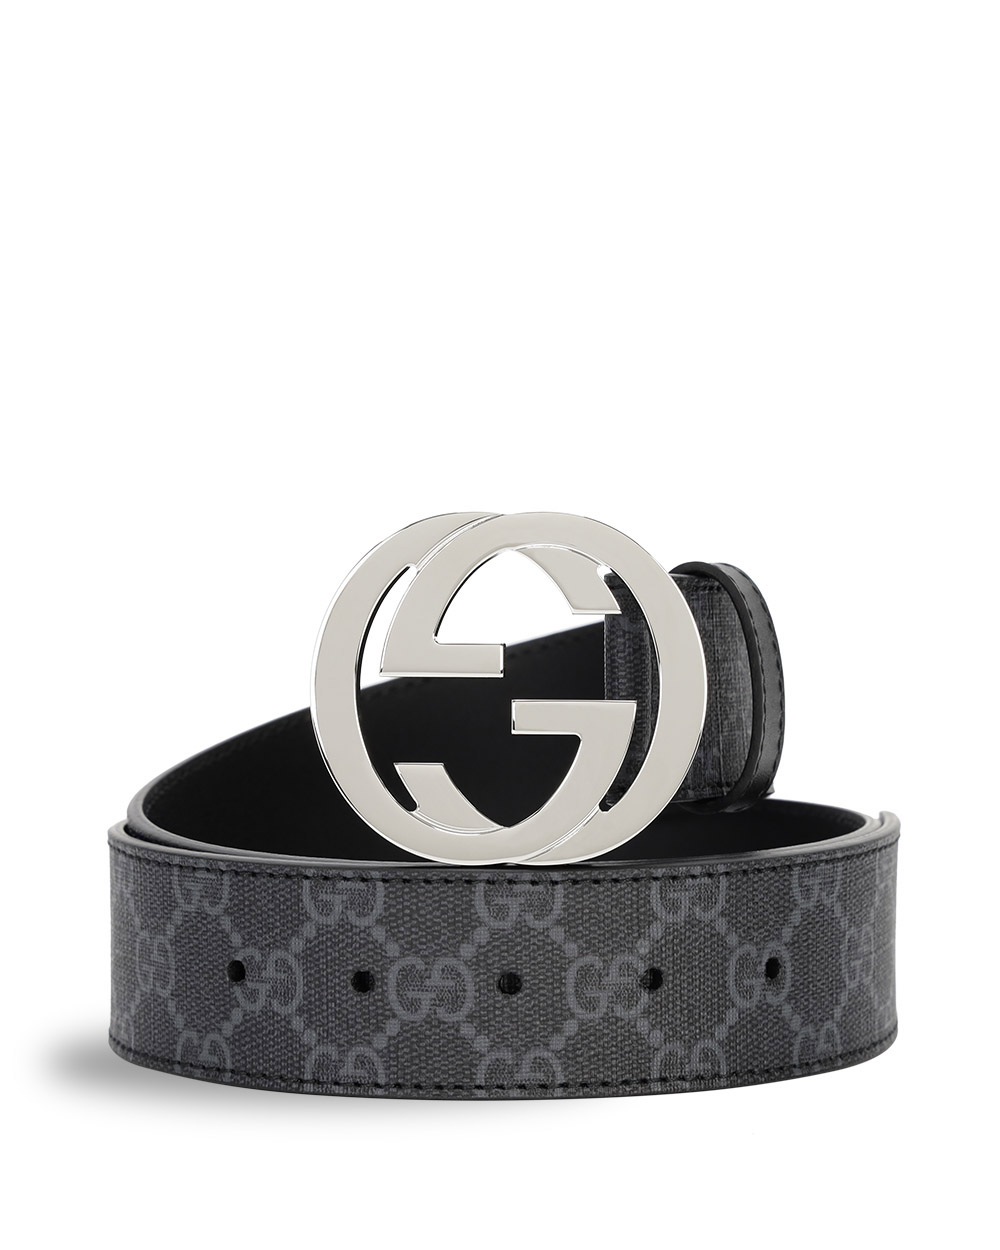 GG Supreme Belt